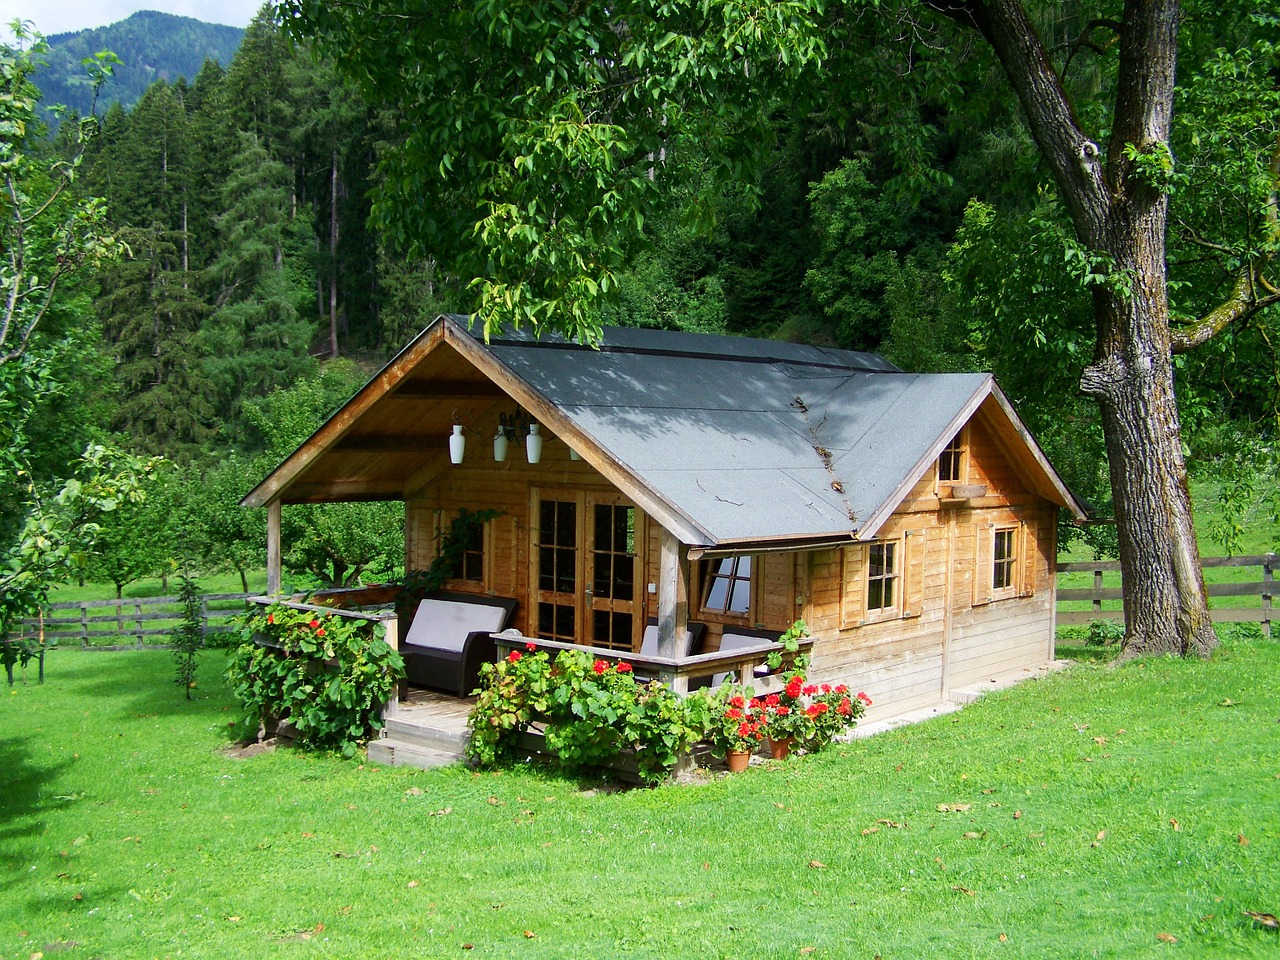 image - Why Should You Live In A Tiny House